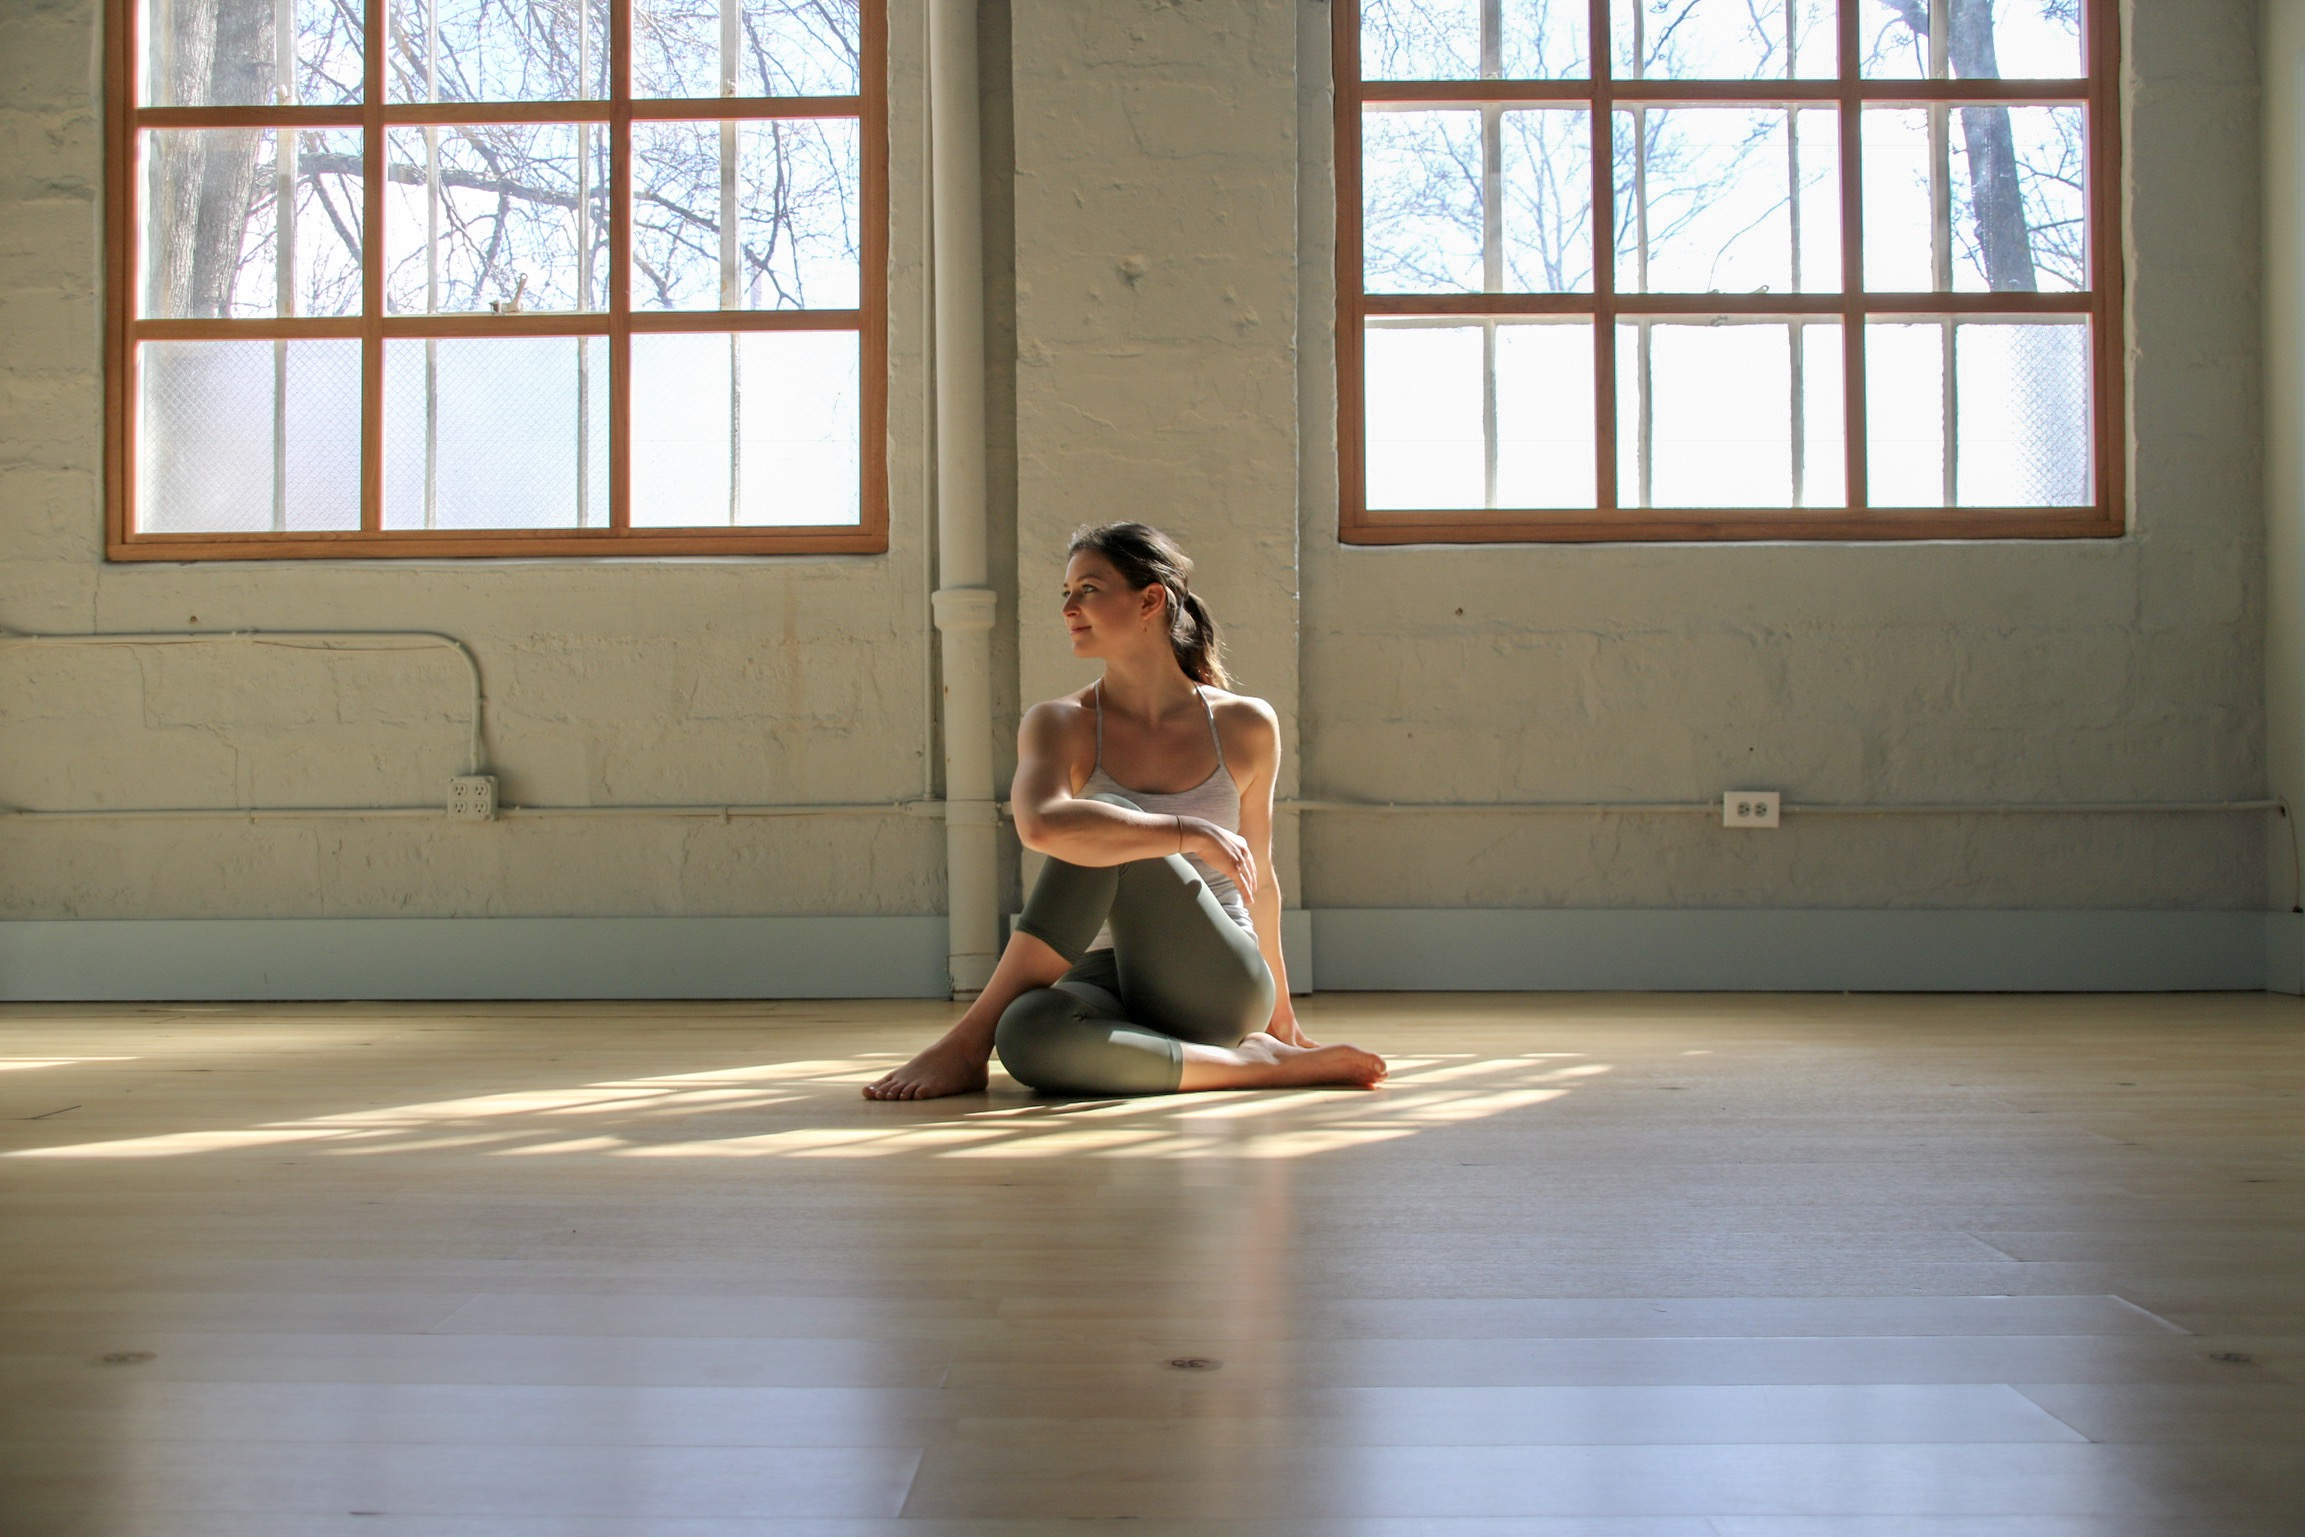 How to practice: From a seated position extend left leg long, step right foot to the outside of the left leg, choosing to keep the left leg extended or bend the left knee and slide the left ankle towards the right hip. Sit tall and twist to the right, draping the left arm over the right thigh, and stepping the right hand to the floor behind you for support. Unravel and switch sides.